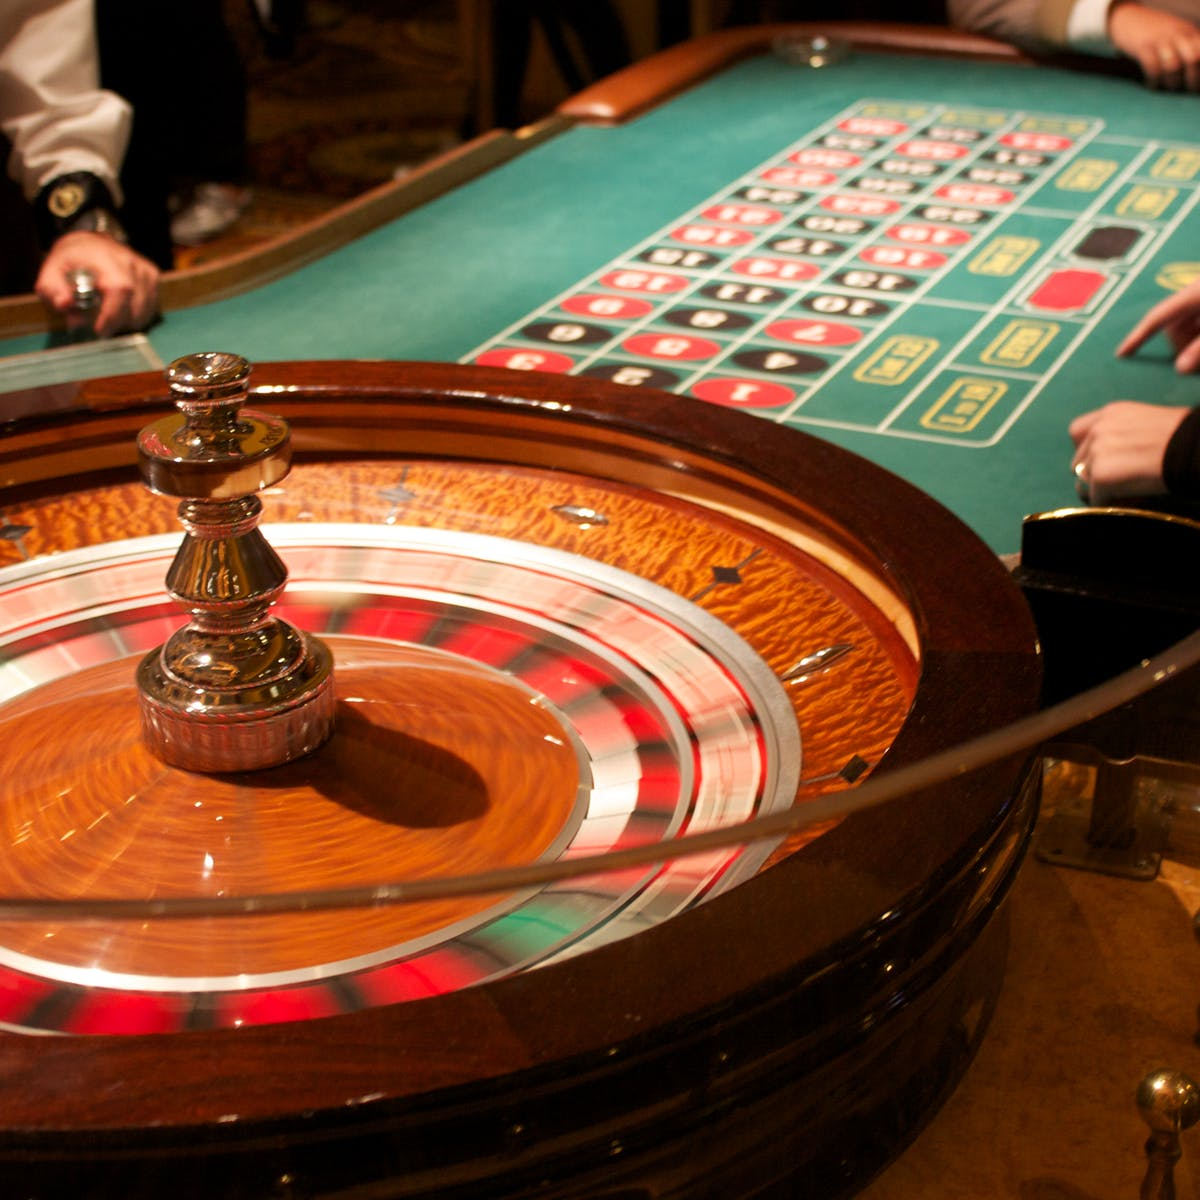 The day zero was banned from British roulette – how times have changed